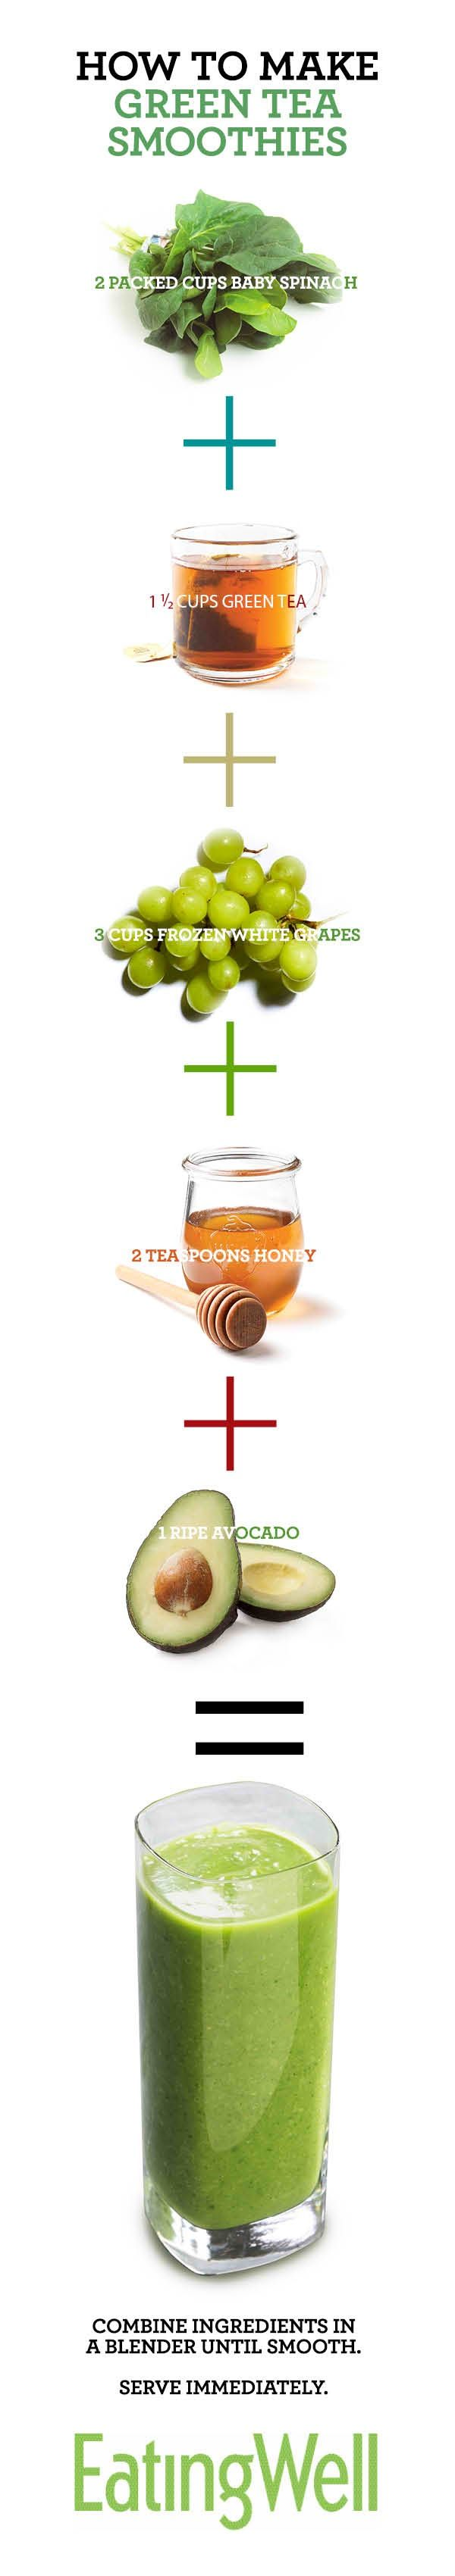 How to make green tea smoothies- honey and less avocado (personalized)